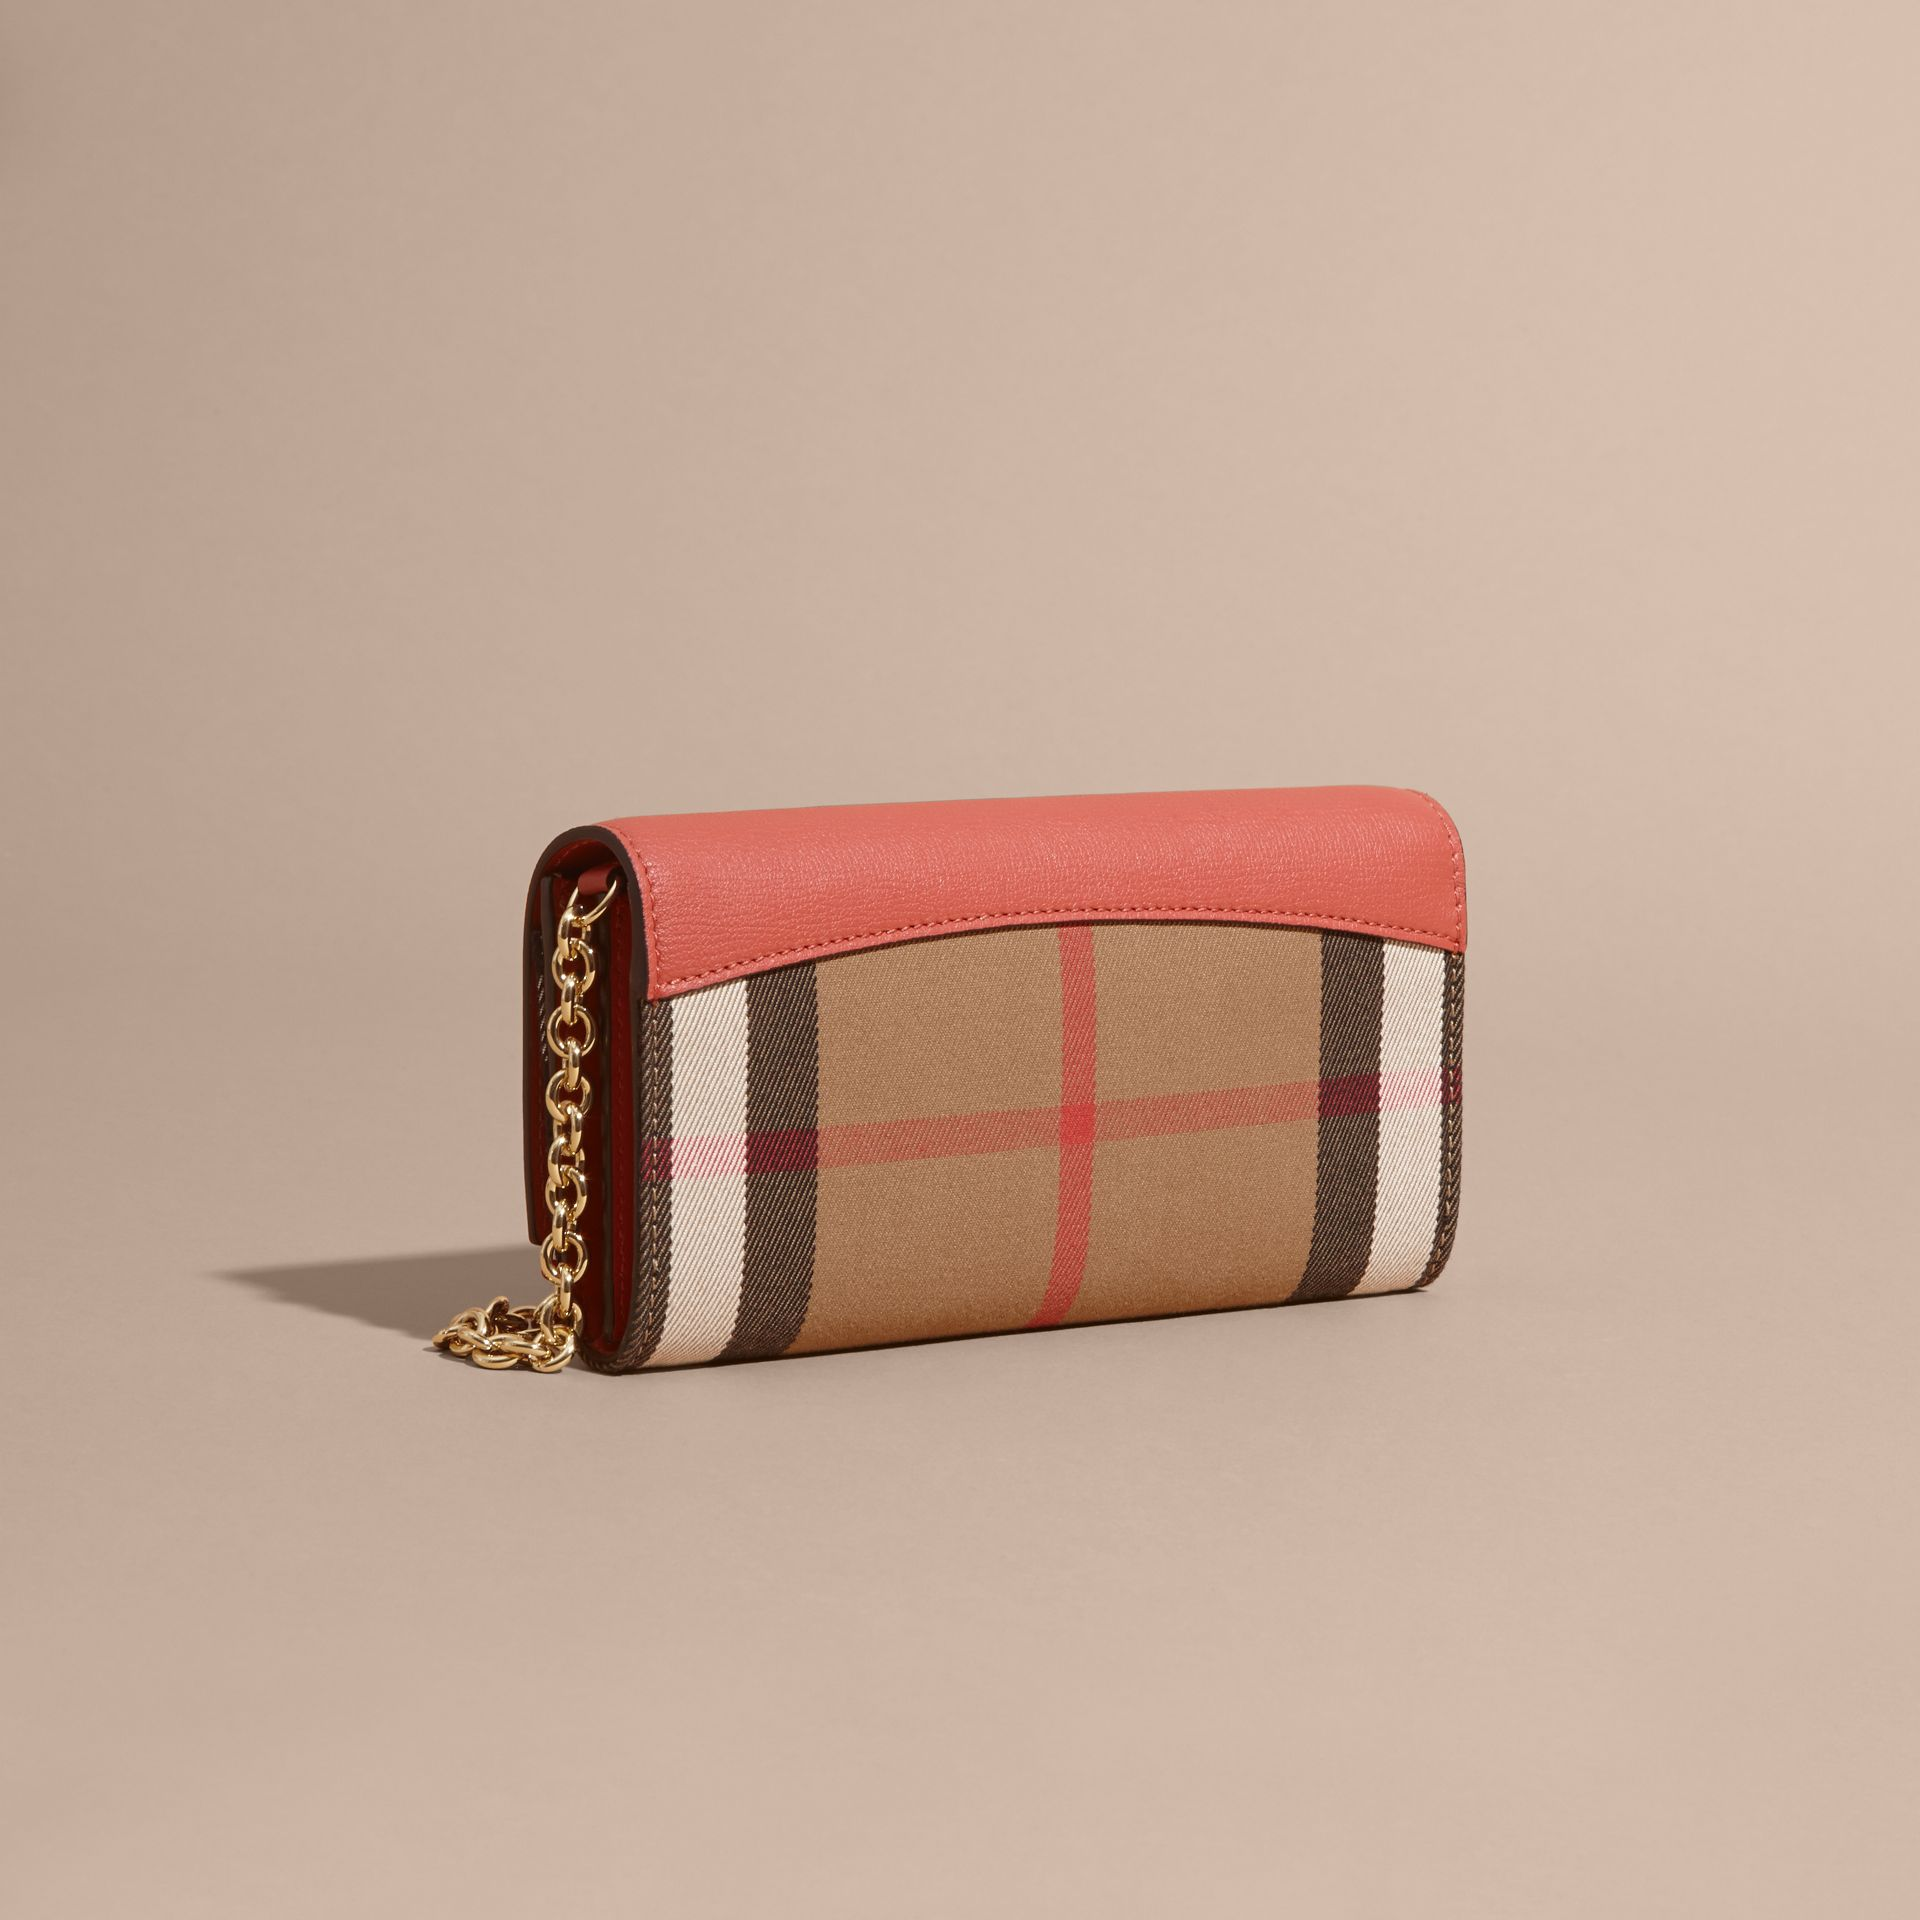 House Check and Leather Wallet with Chain in Cinnamon Red - Women | Burberry United Kingdom - gallery image 4